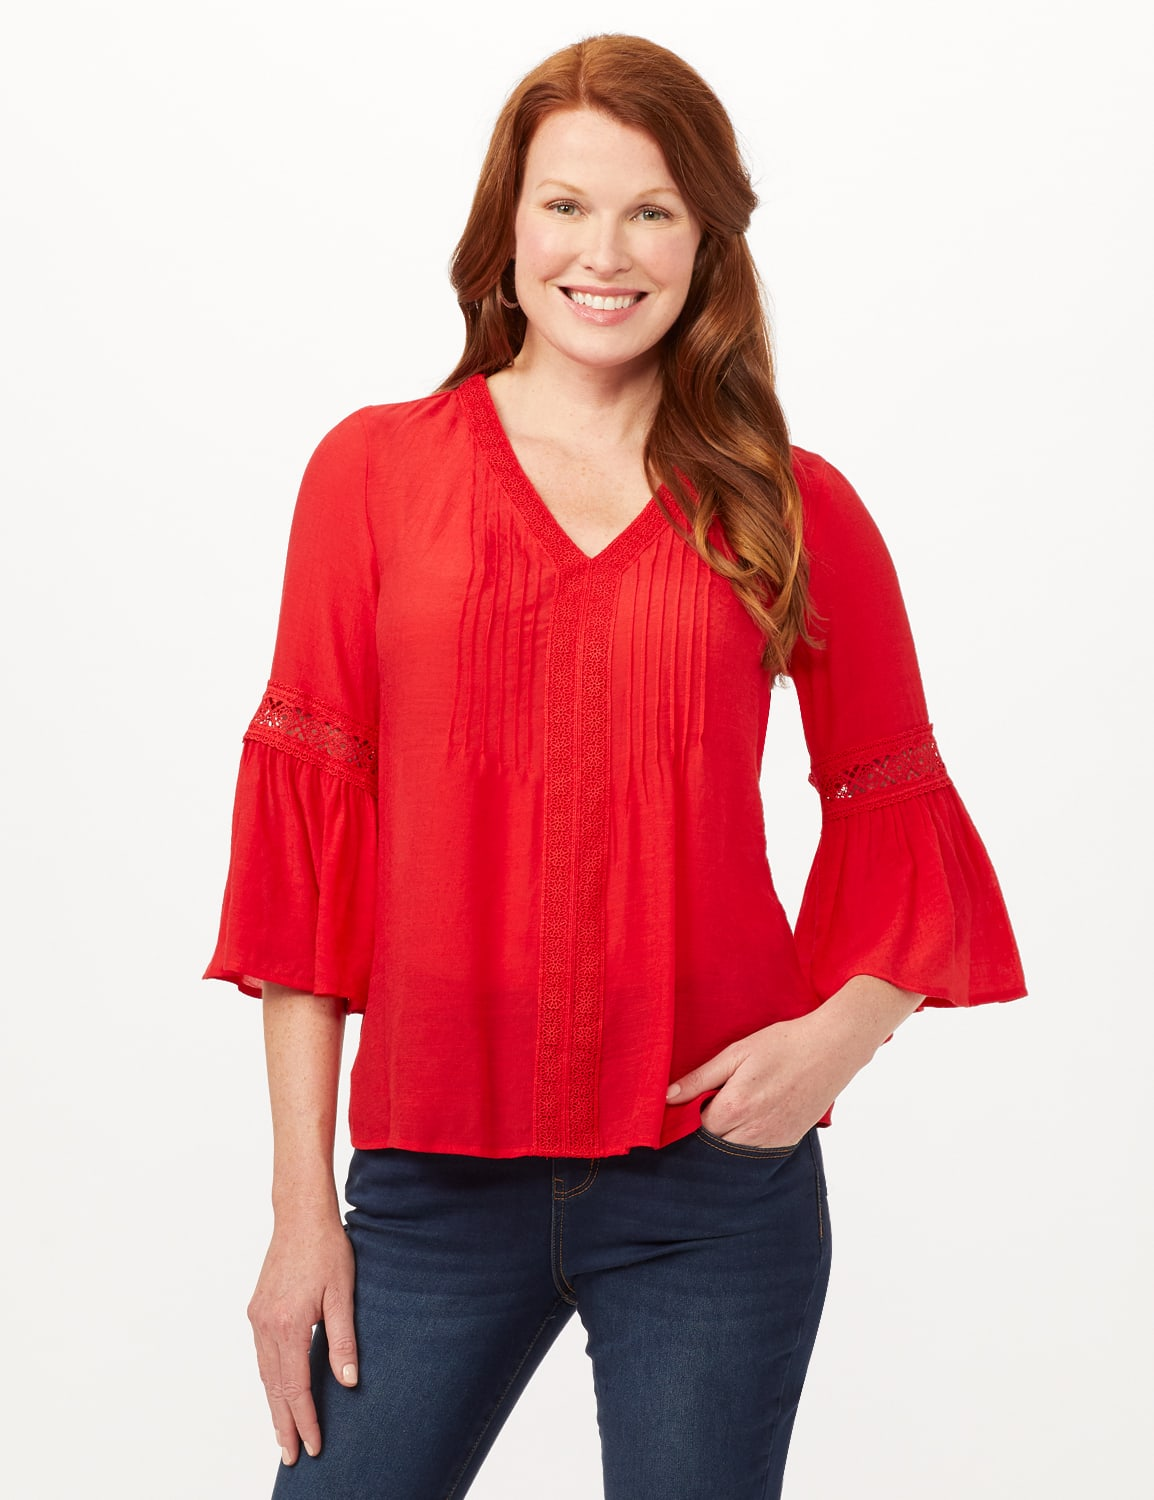 V-Neck Crochet Trim Texture Top - Red - Front